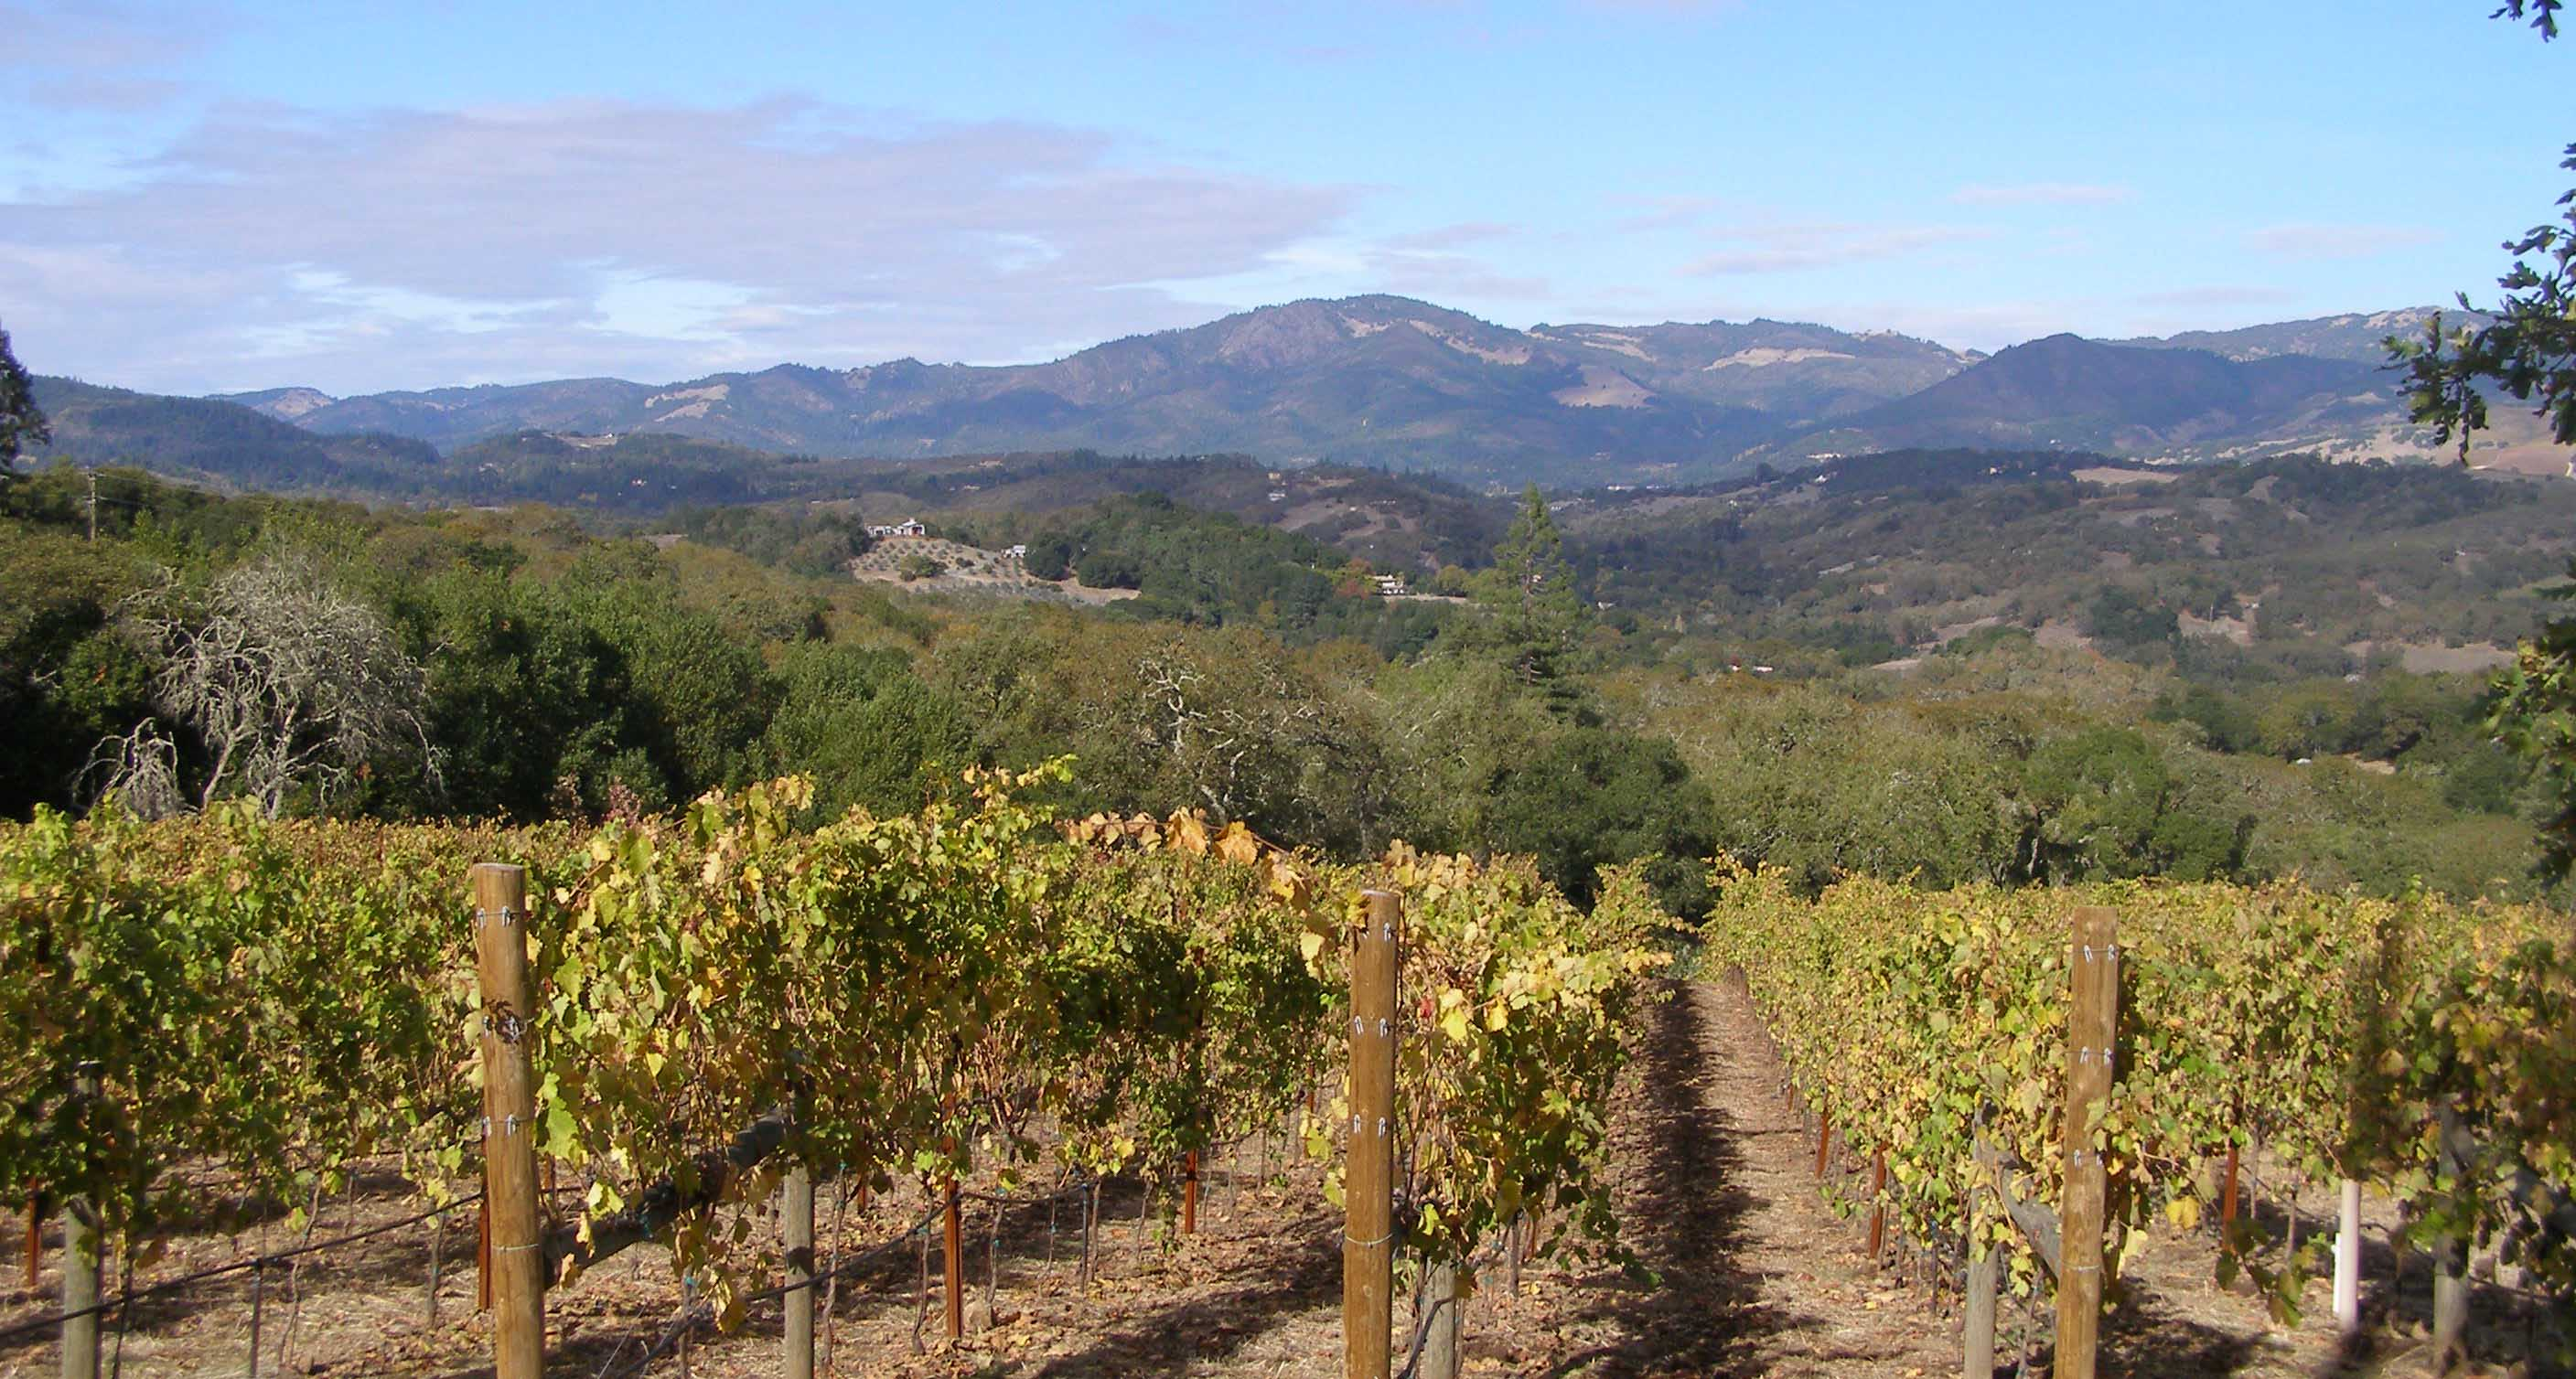 Vineyards in the Sonoma Hills, Overlooking the Mayacamas. Napa is in the distance, on the other side.